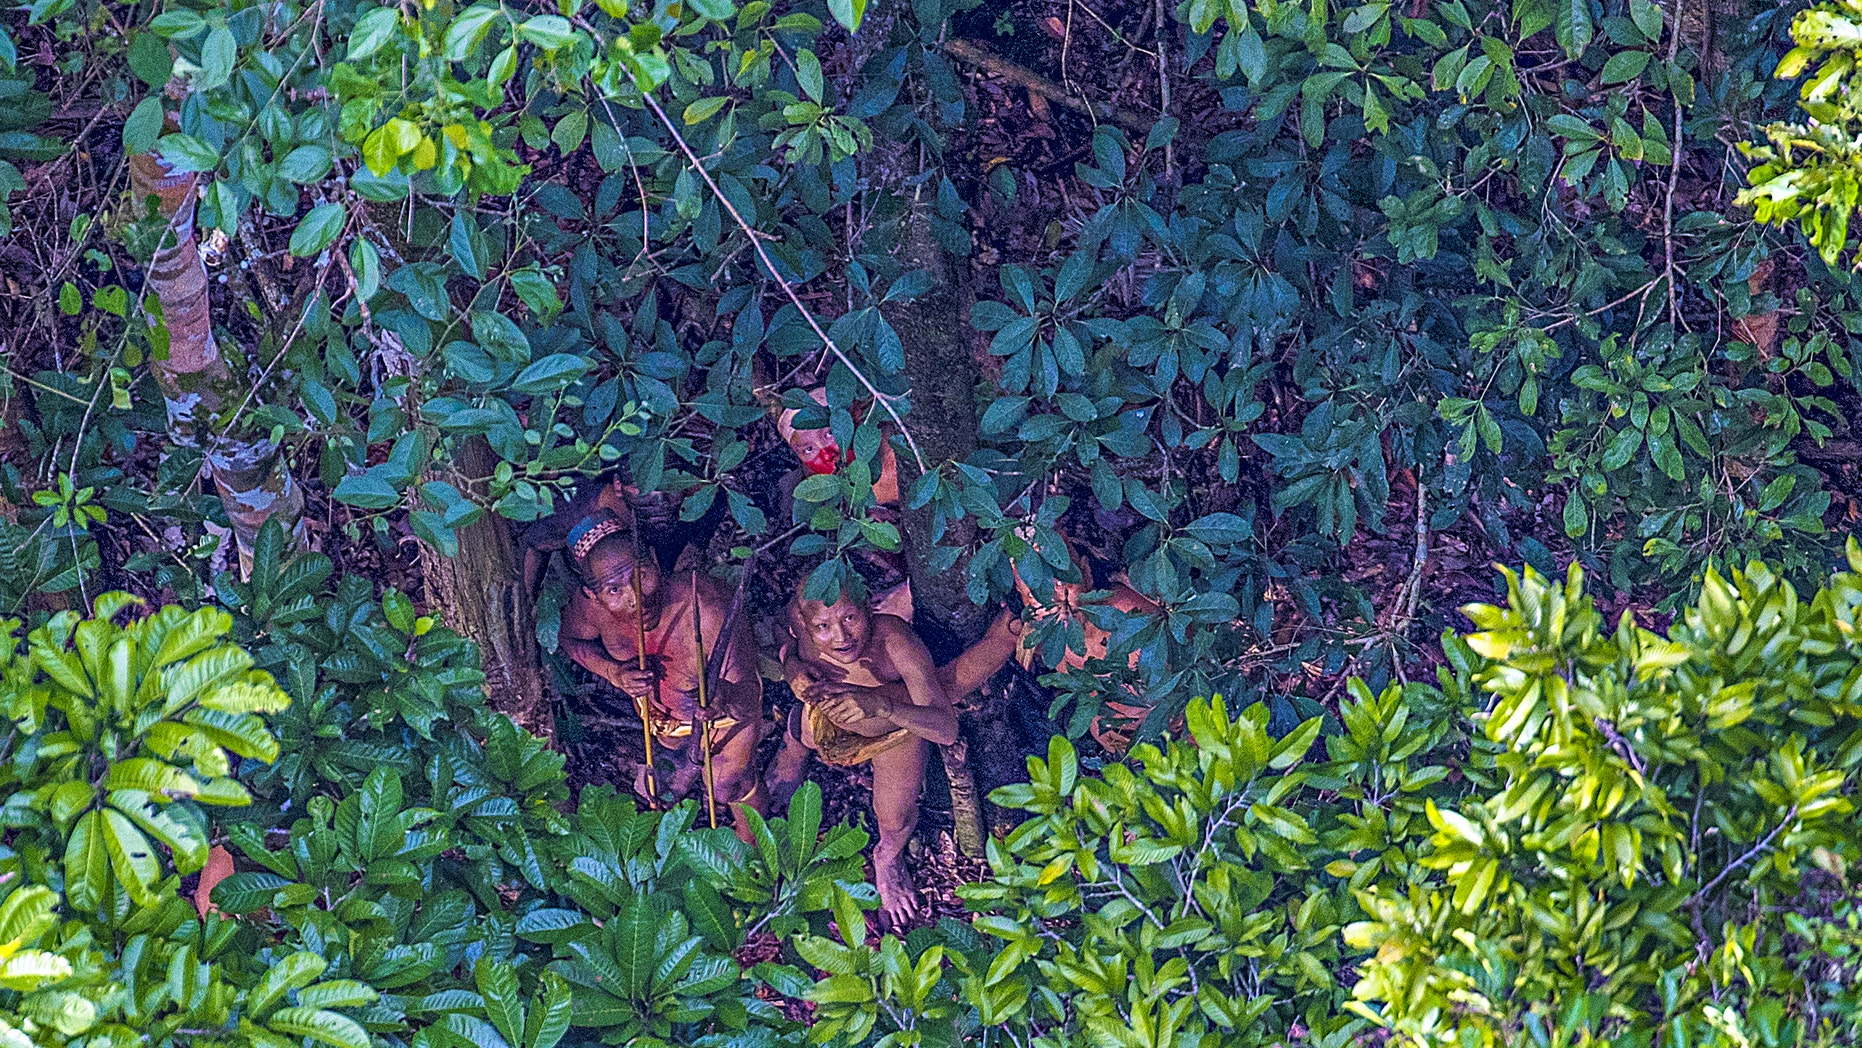 A small group of an isolated indian in Amazon, Brazil. (PHOTOGRAPH BY RICARDO STUCKERT).